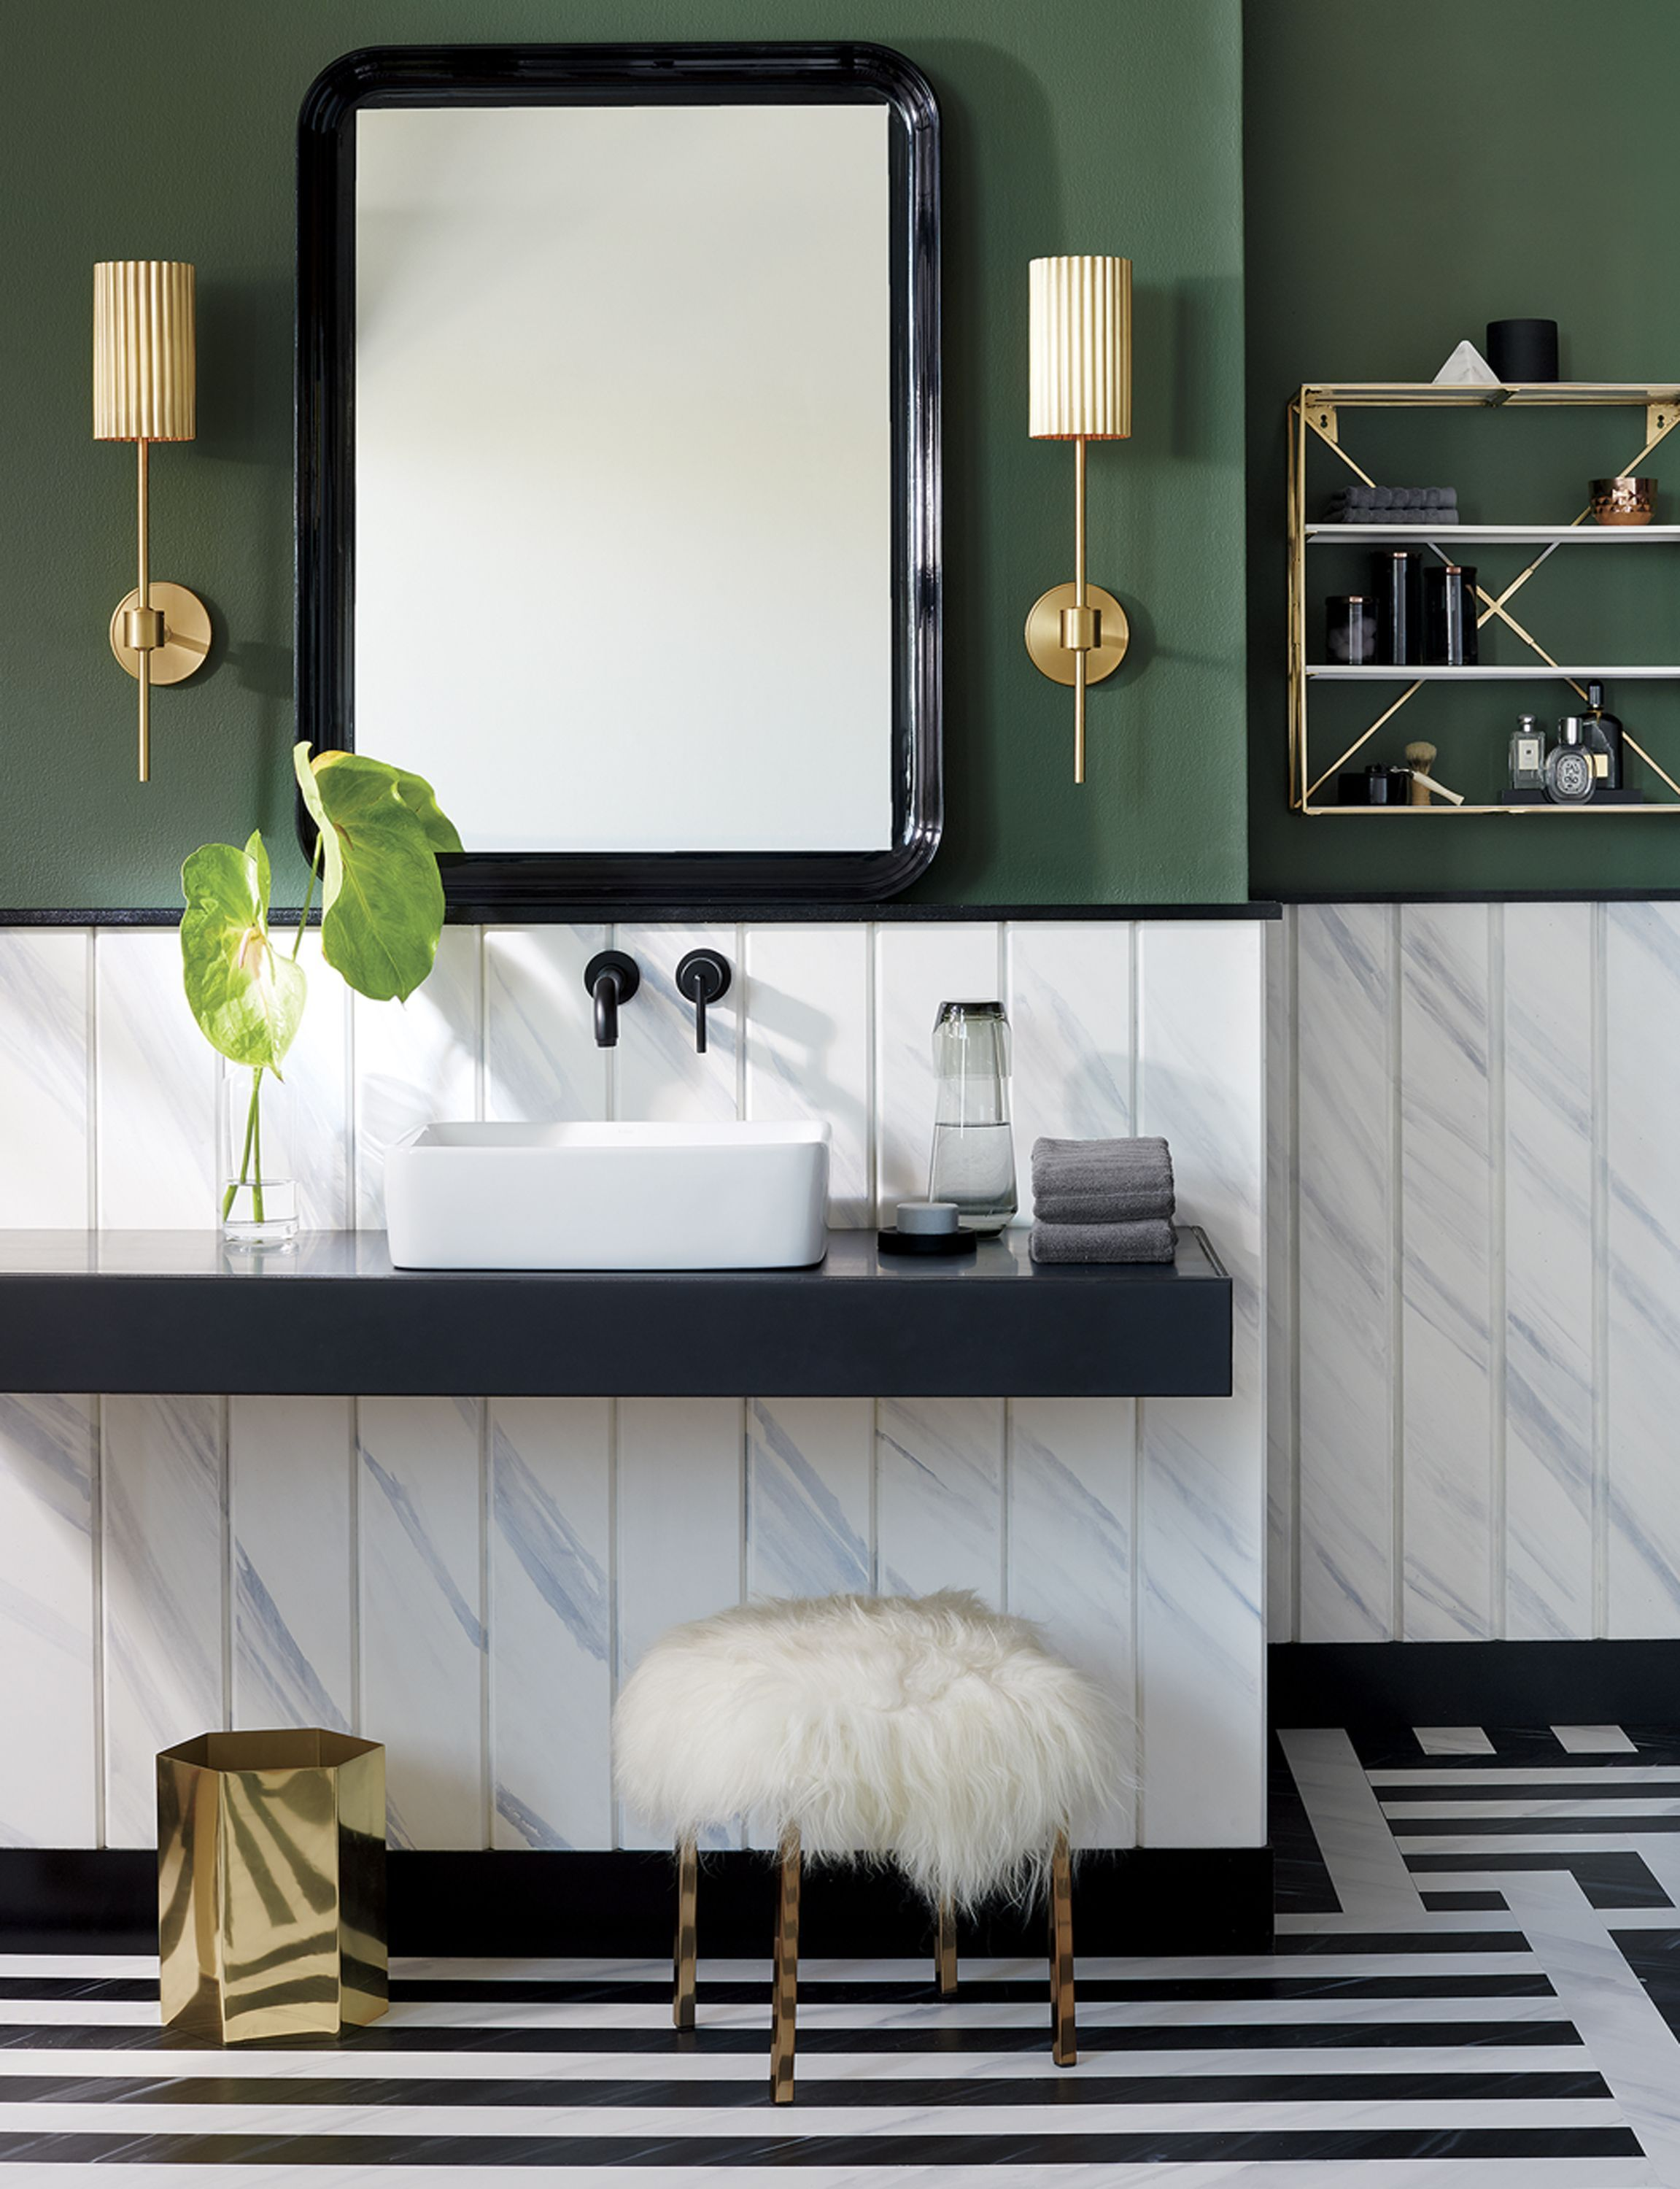 Modern Bathroom Forest Green Wall Color Is Speaking To Me Modernbathroomcolors Green Bathroom Decor Eclectic Bathroom Green Bathroom Colors